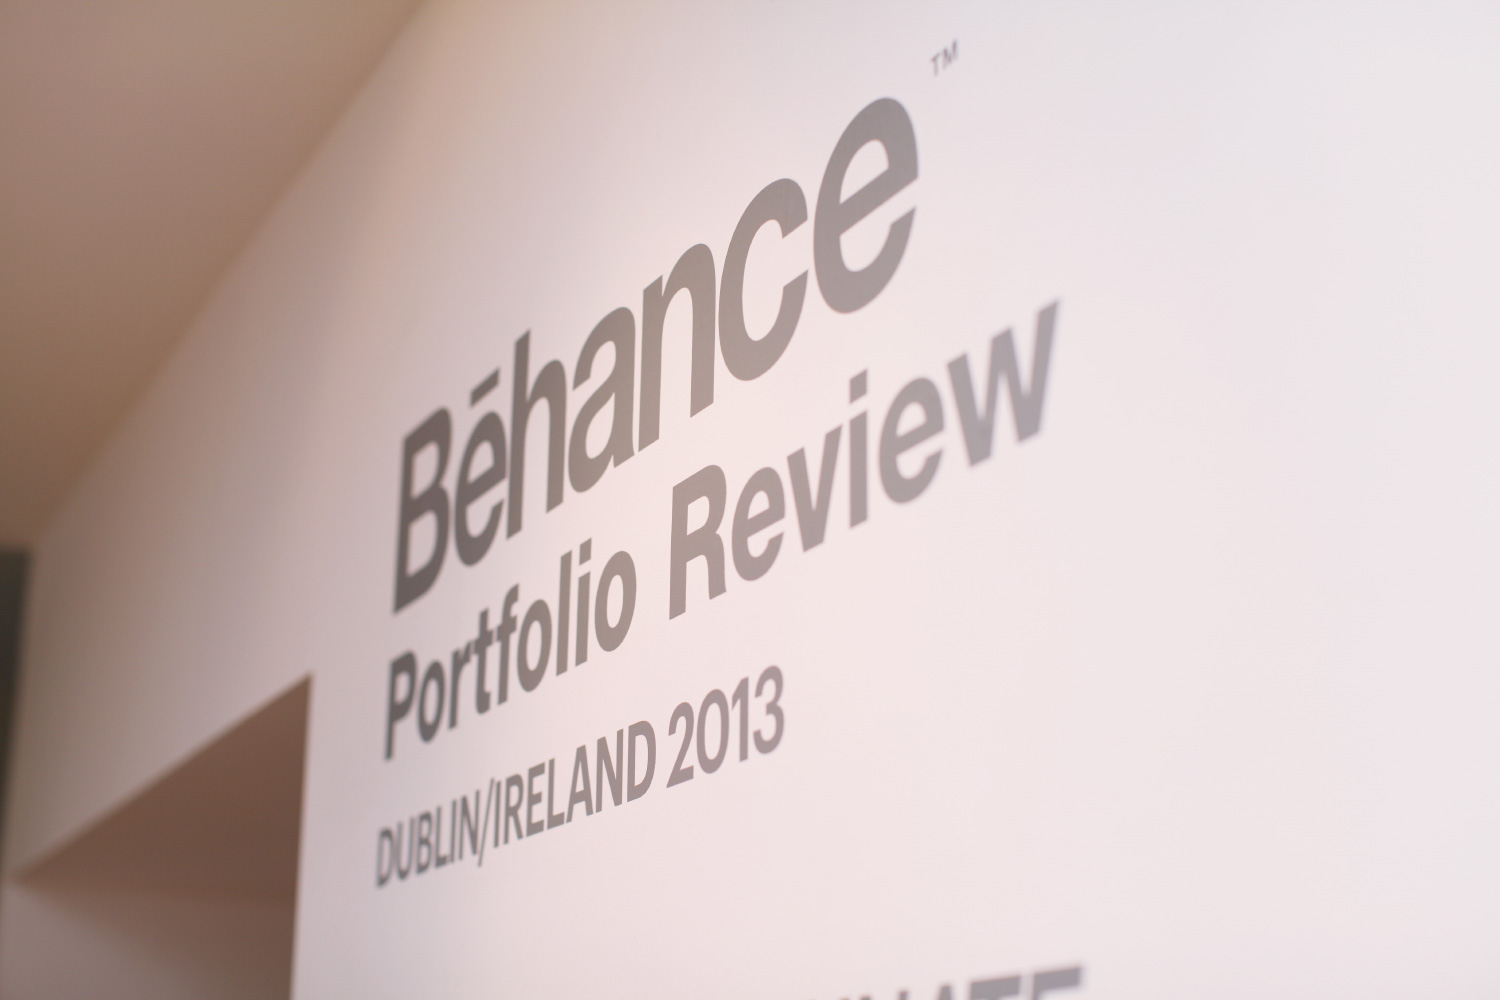 Behance Review